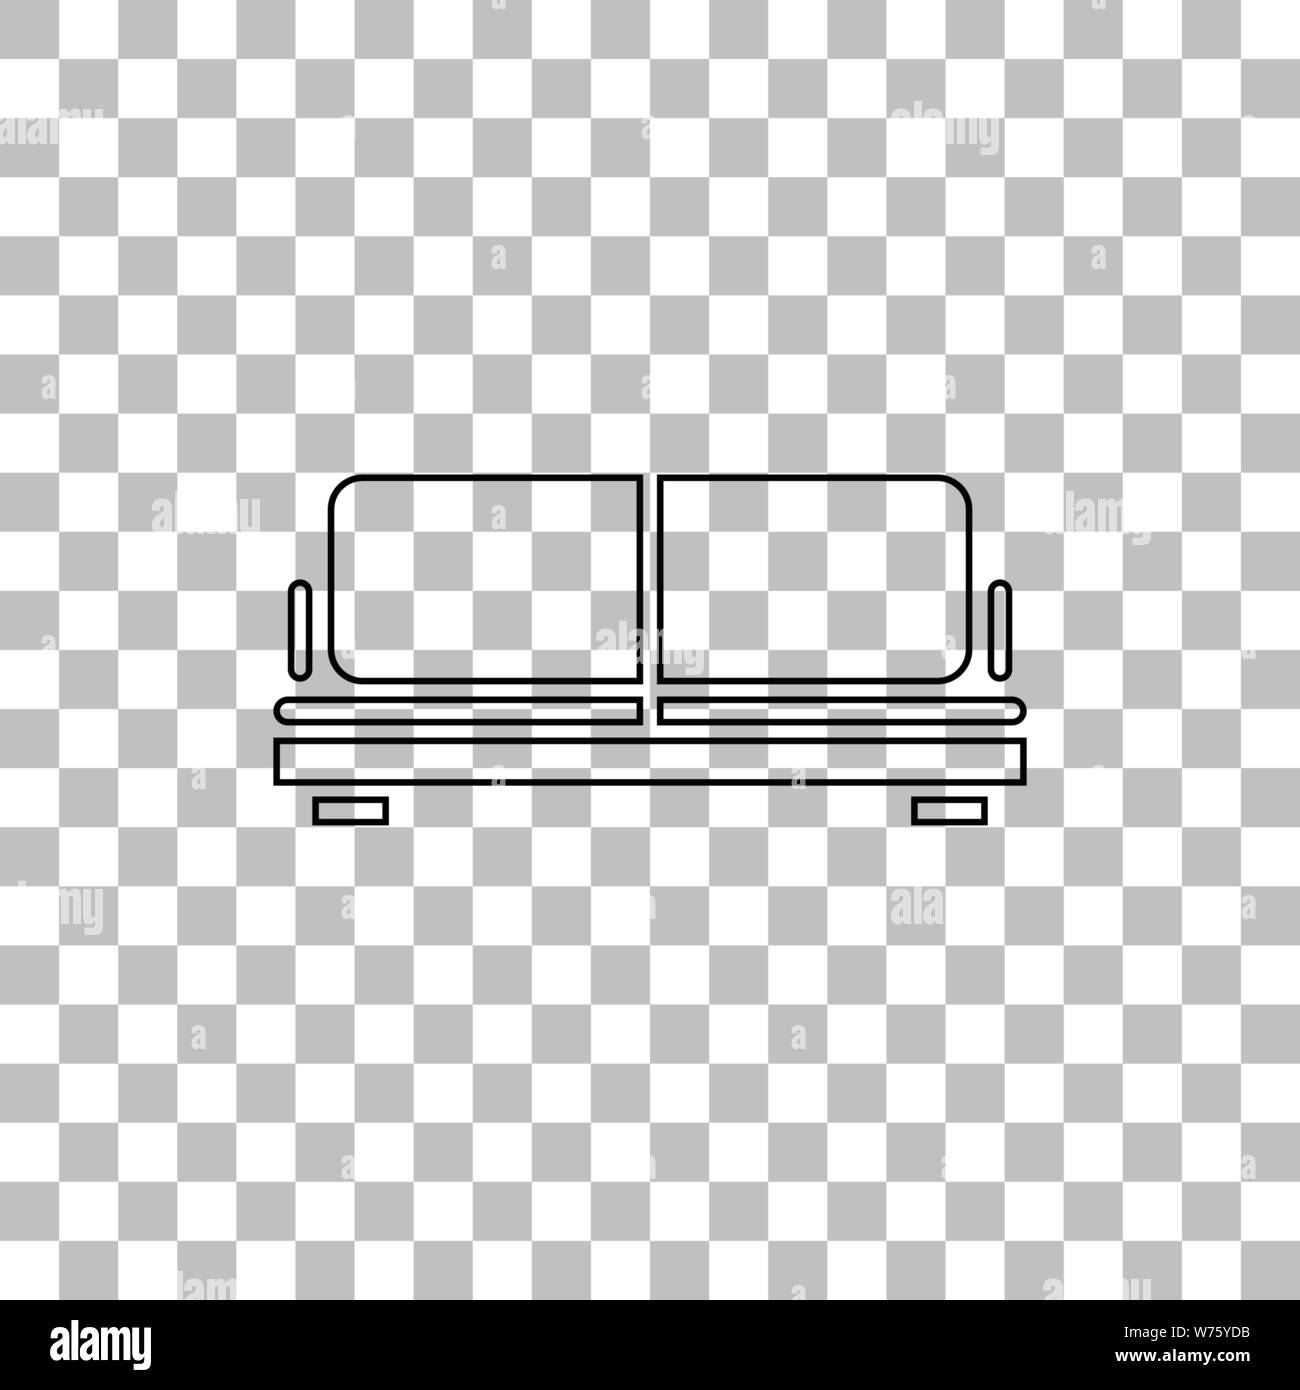 Surprising Armchair Black Flat Icon On A Transparent Background Theyellowbook Wood Chair Design Ideas Theyellowbookinfo